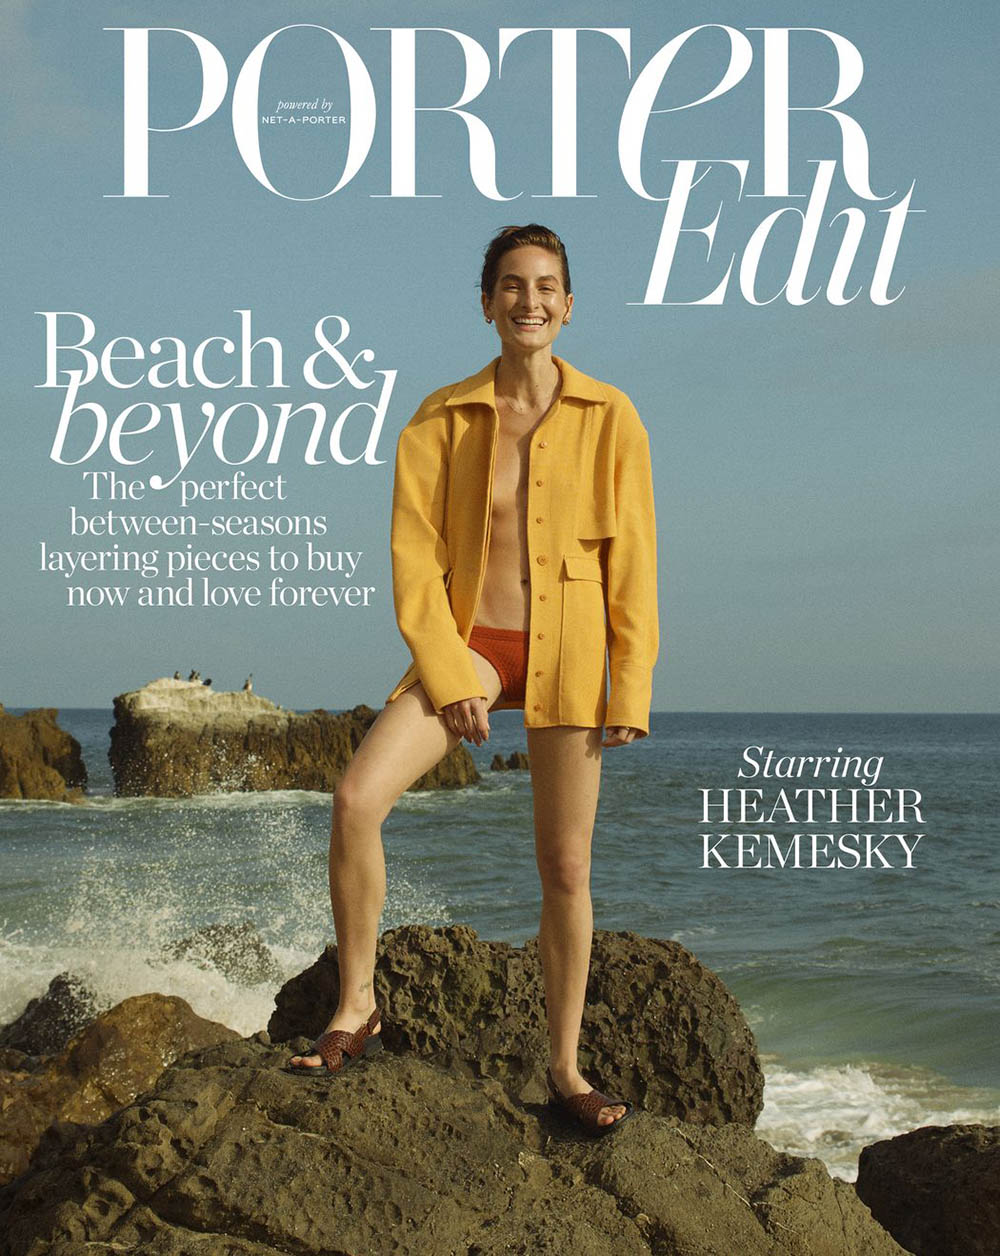 Heather Kemesky covers Porter Edit July 26th, 2019 by Matthew Sprout